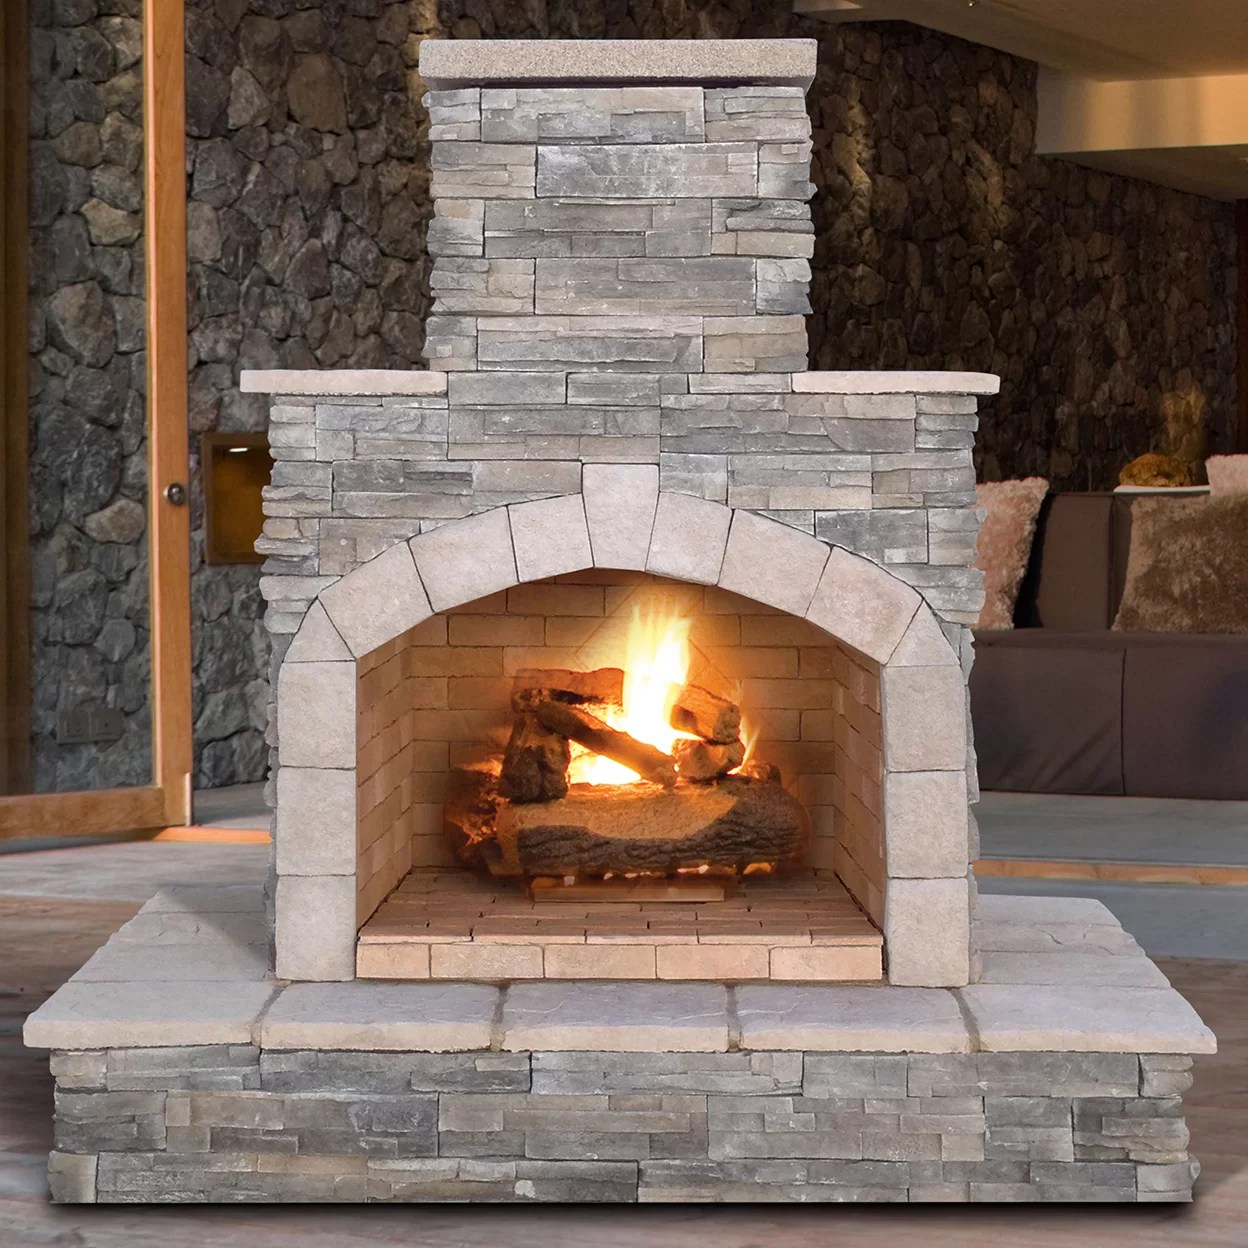 Fire Stones For Fireplace Cultured Stone Propane Natural Gas Outdoor Fireplace